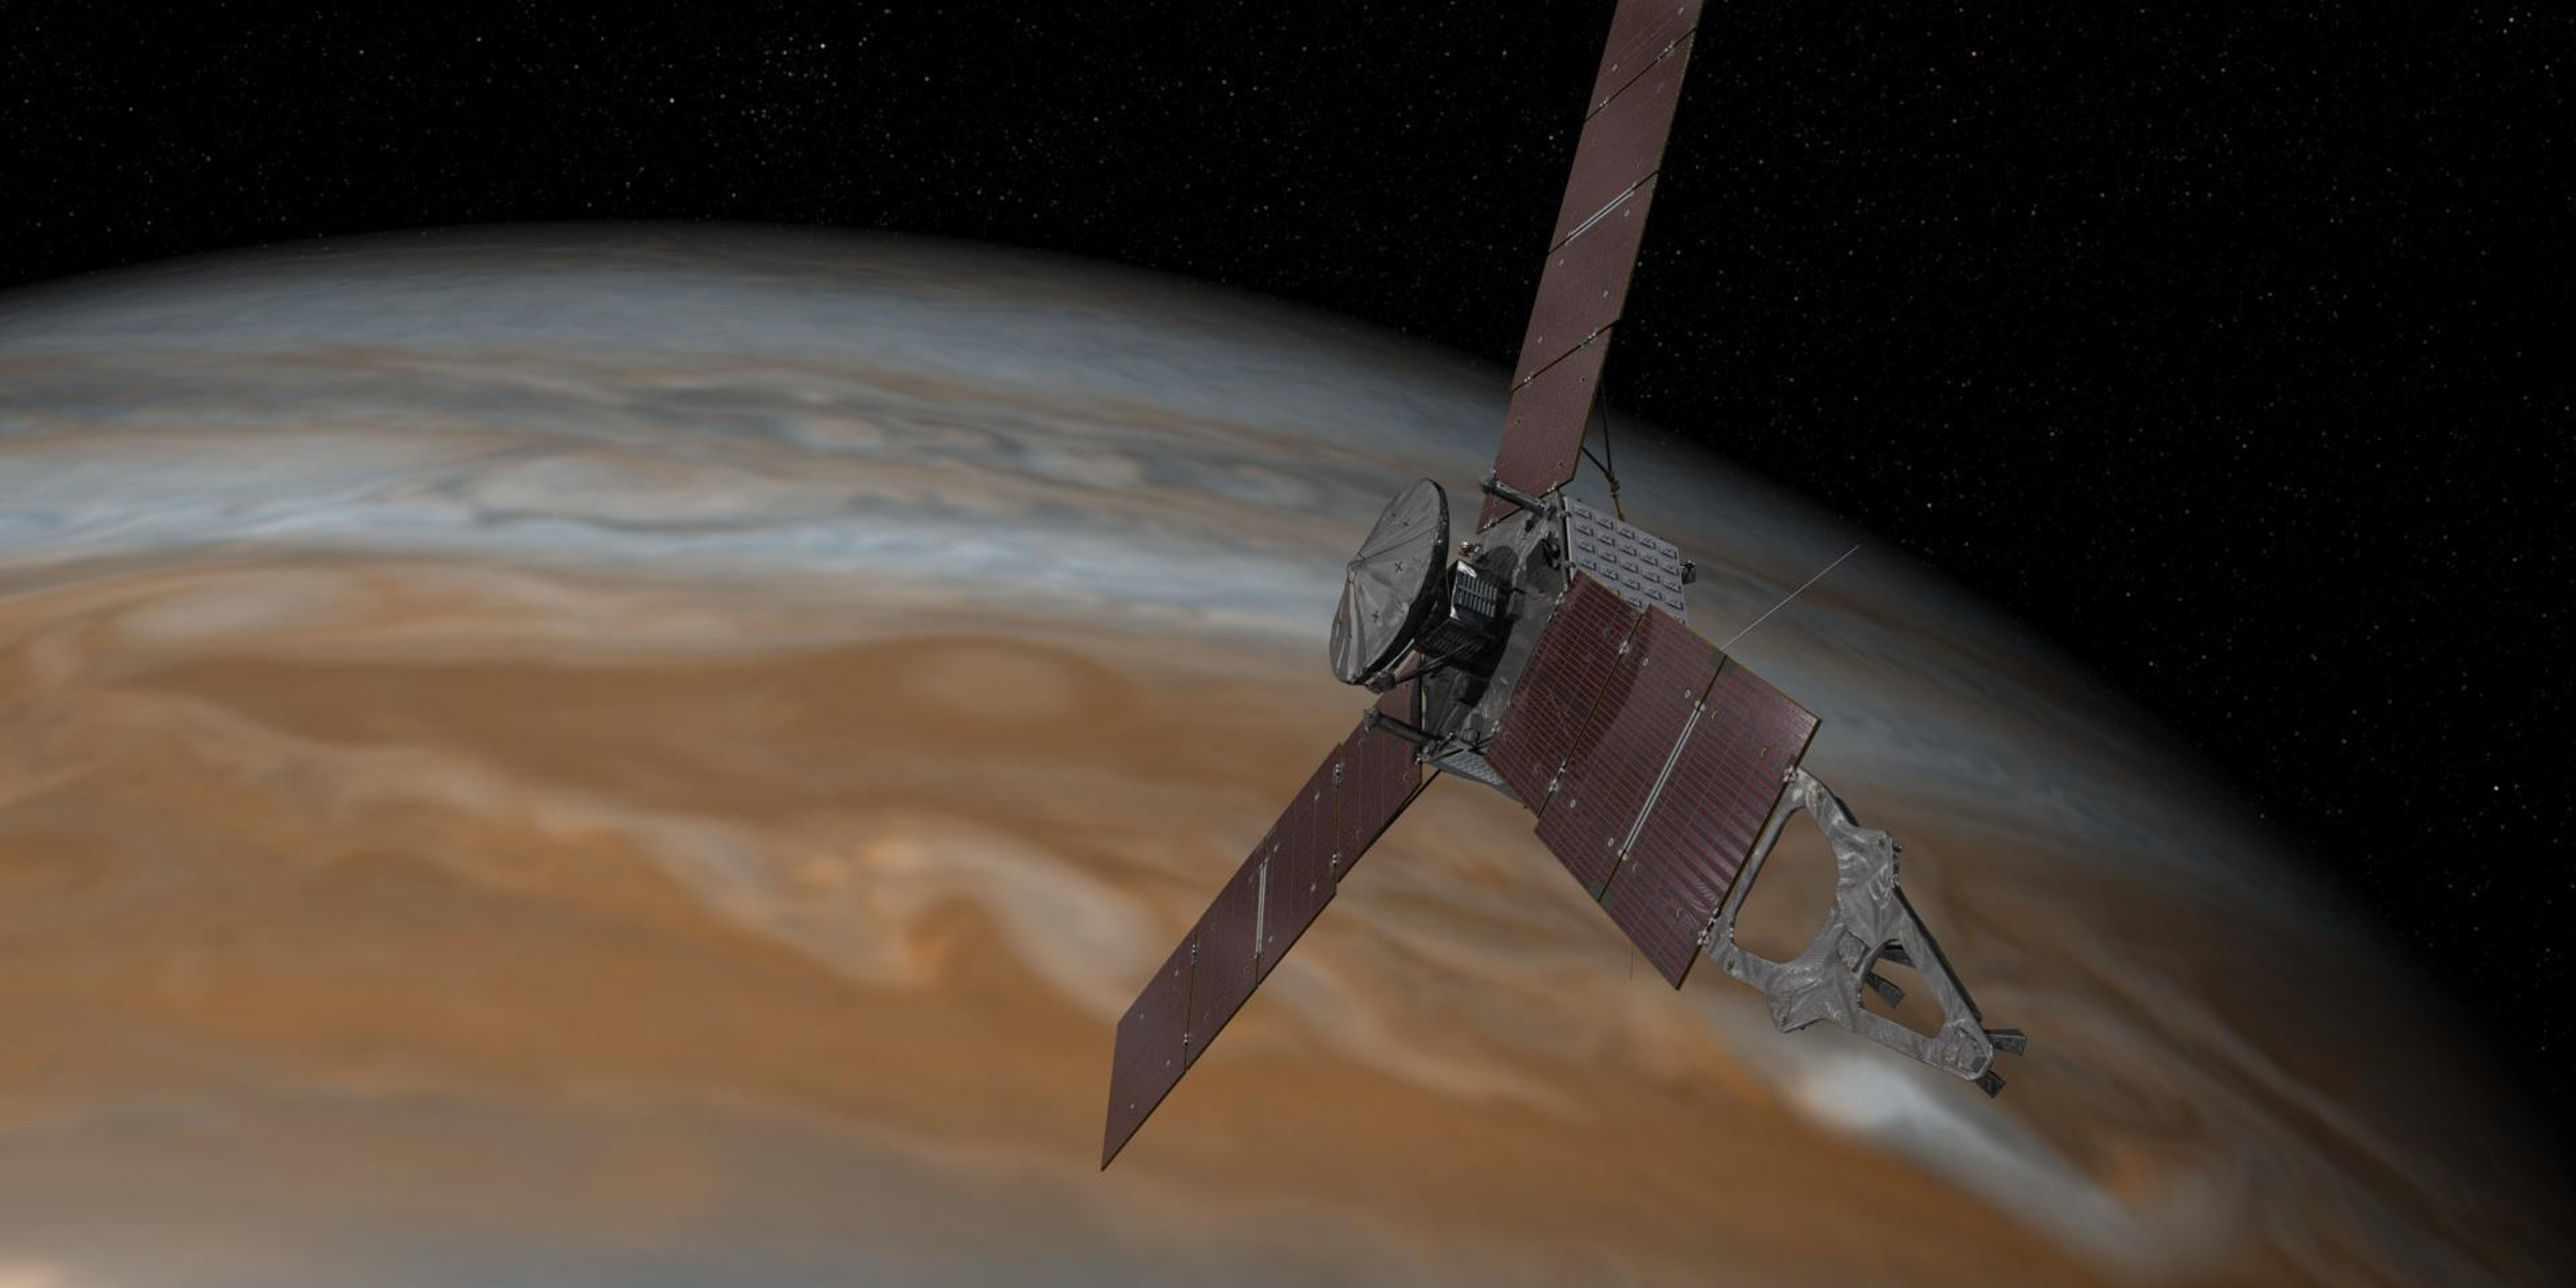 Artist's rendering shows NASA's Juno spacecraft making one of its close passes over Jupiter.